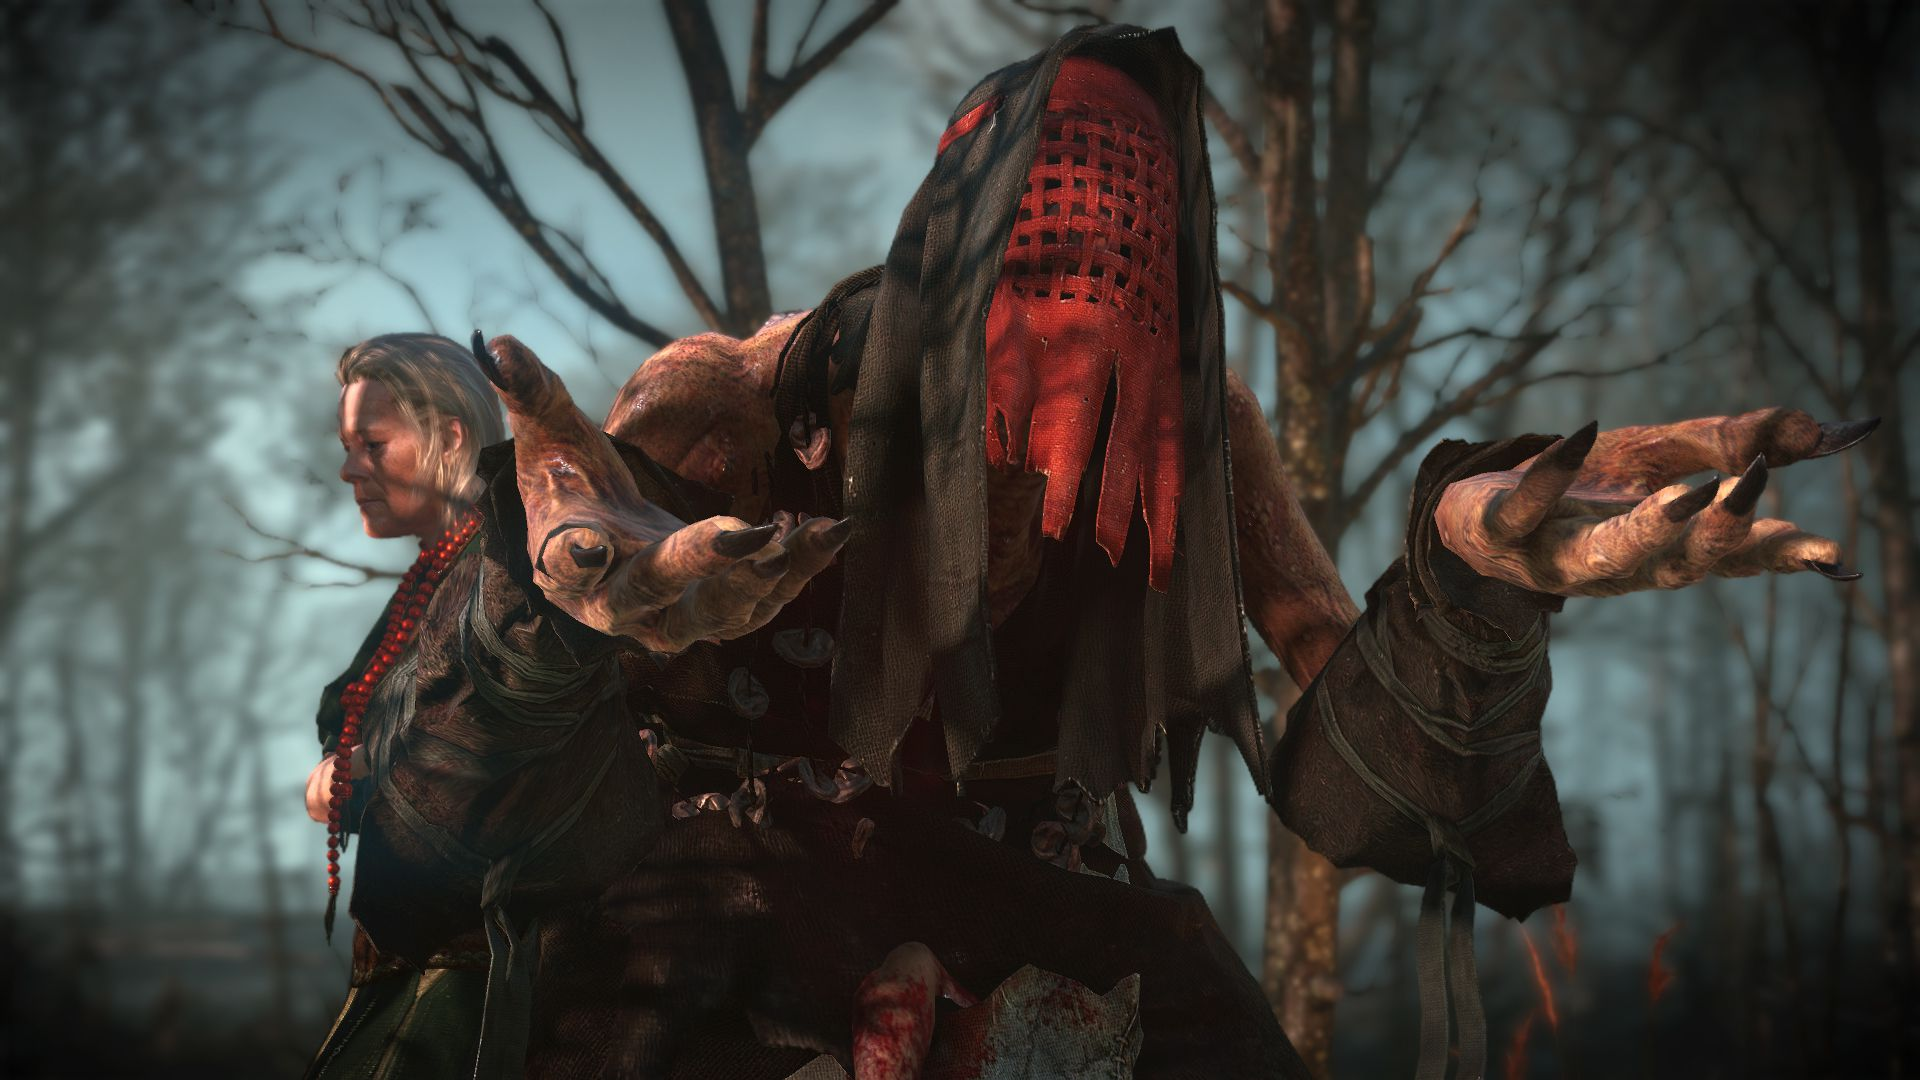 the_witcher_3_wild_hunt-witch_1407869459